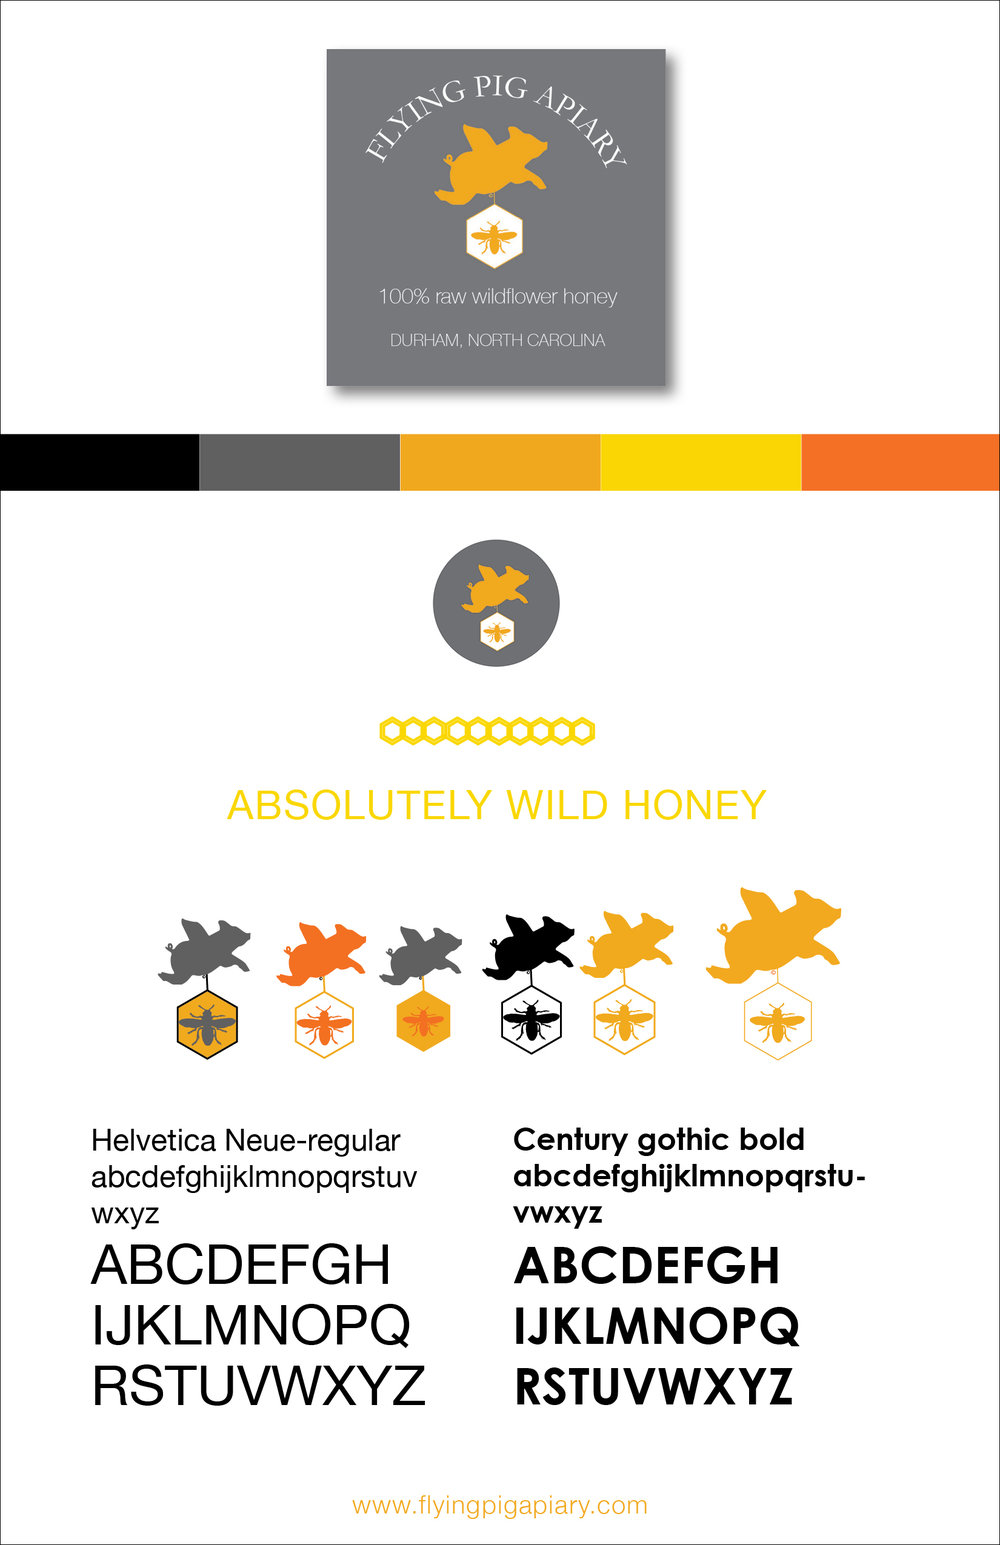 Copy of Flying Pig Apiary Branding